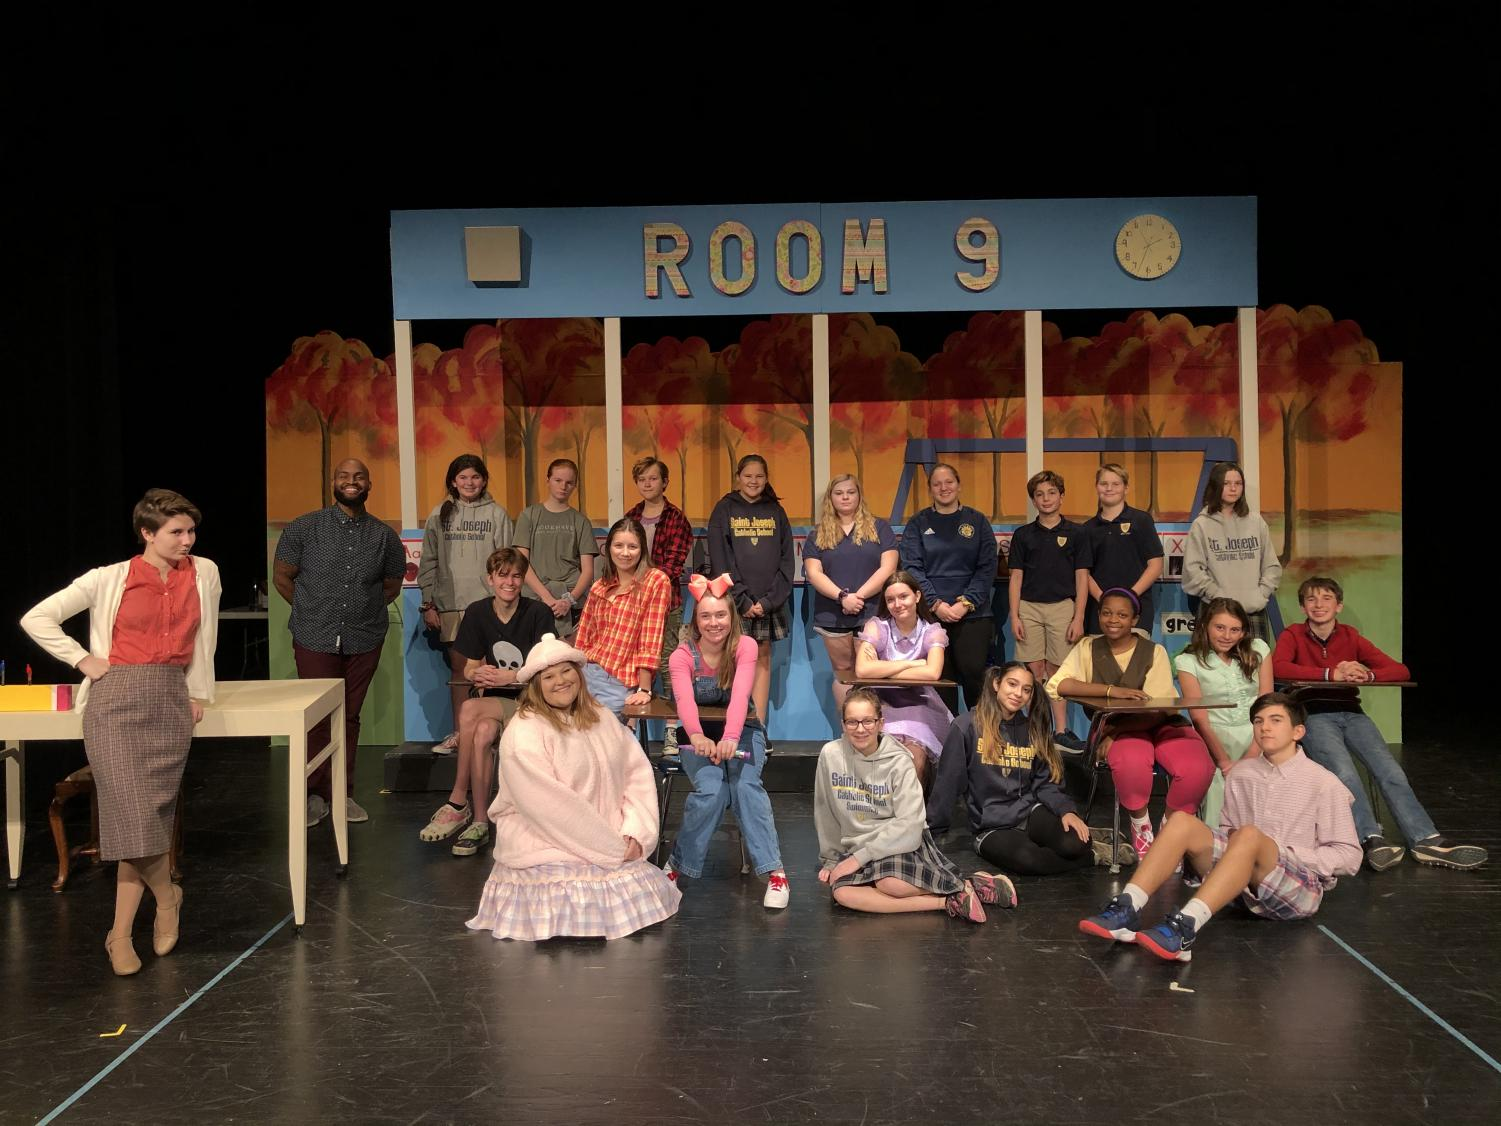 """The cast crew of the St. Joseph Catholic School stage production of """"Junie B. Jones is NOT a Crook."""" Back row from left: Mr. Madison Upendo, the St. Joe theater teacher and play's director; Loria Williams; Ava Schuetzle; Anna Grace Starnes; Anna Veston Deer; Abigail Hardeman; Molly Moody; Turner Brown; Connor Odom; and Addie Welshans. Second row sitting in desks from left, Anderson Nixon, Annalise Rome, Hannah Dear, Georgia Conrad, Natalia Igwebuike and Andrew Bain. Sitting on the floor, Mary Kathryn David, Madalyn Weisenberger, Iliana Ramos, Meredith Morrow and Heath Dodson. Leaning against the desk on the far left is Kim Kaiser."""